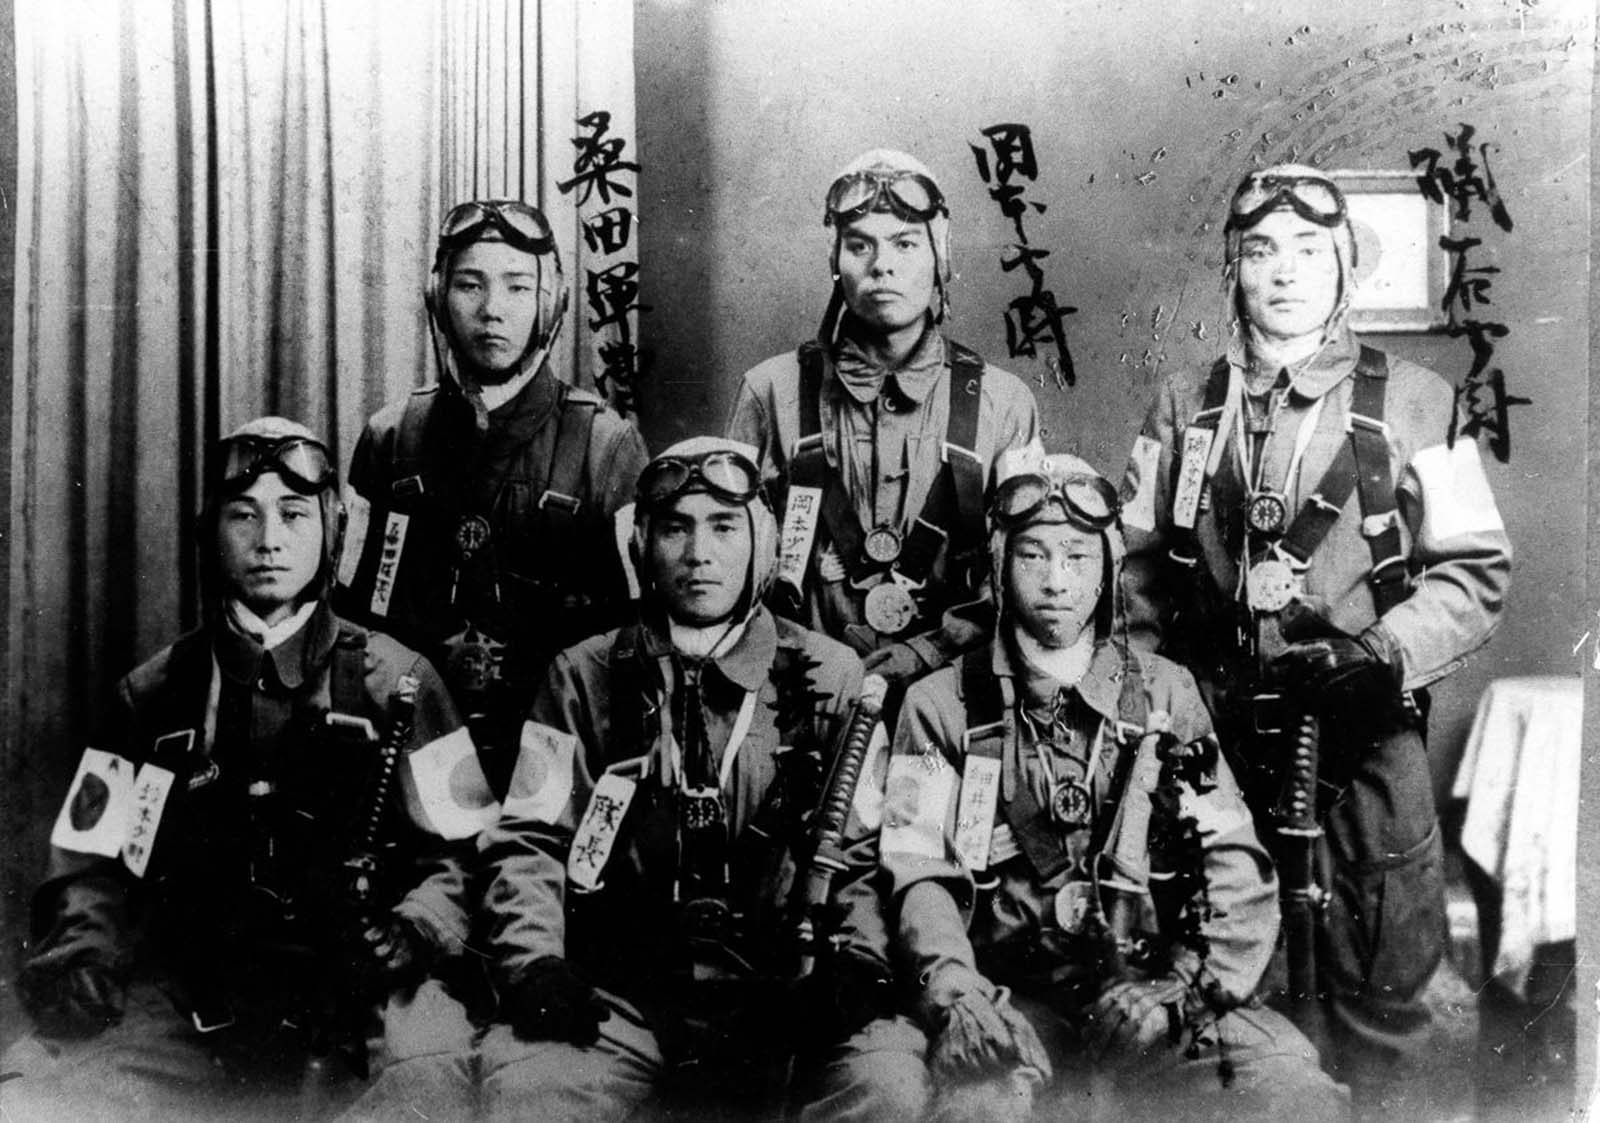 Bomber pilots who participated in the attack on Pearl Harbor.